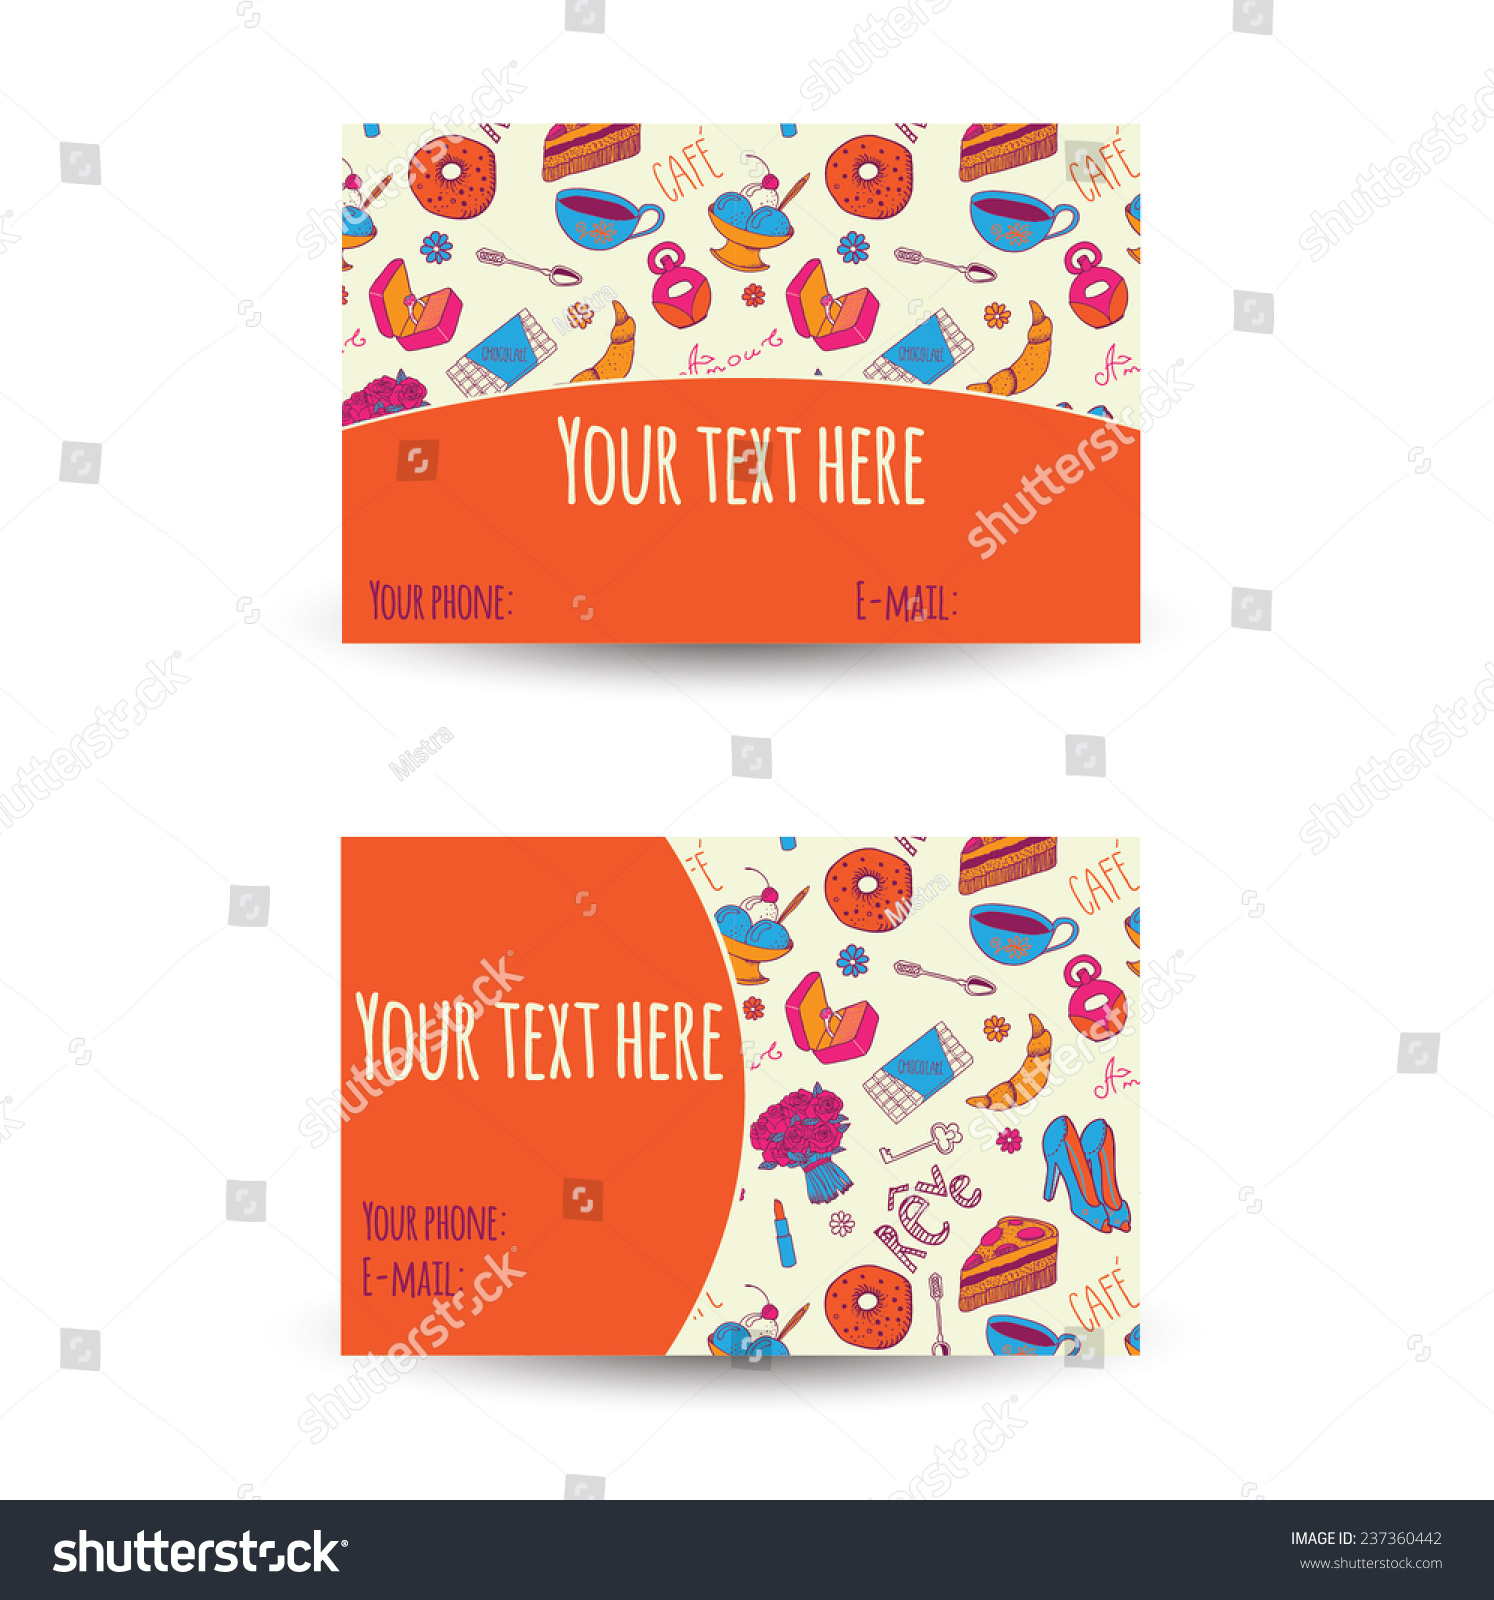 Business Card Design Words French Dream Stock Vector 237360442 ...